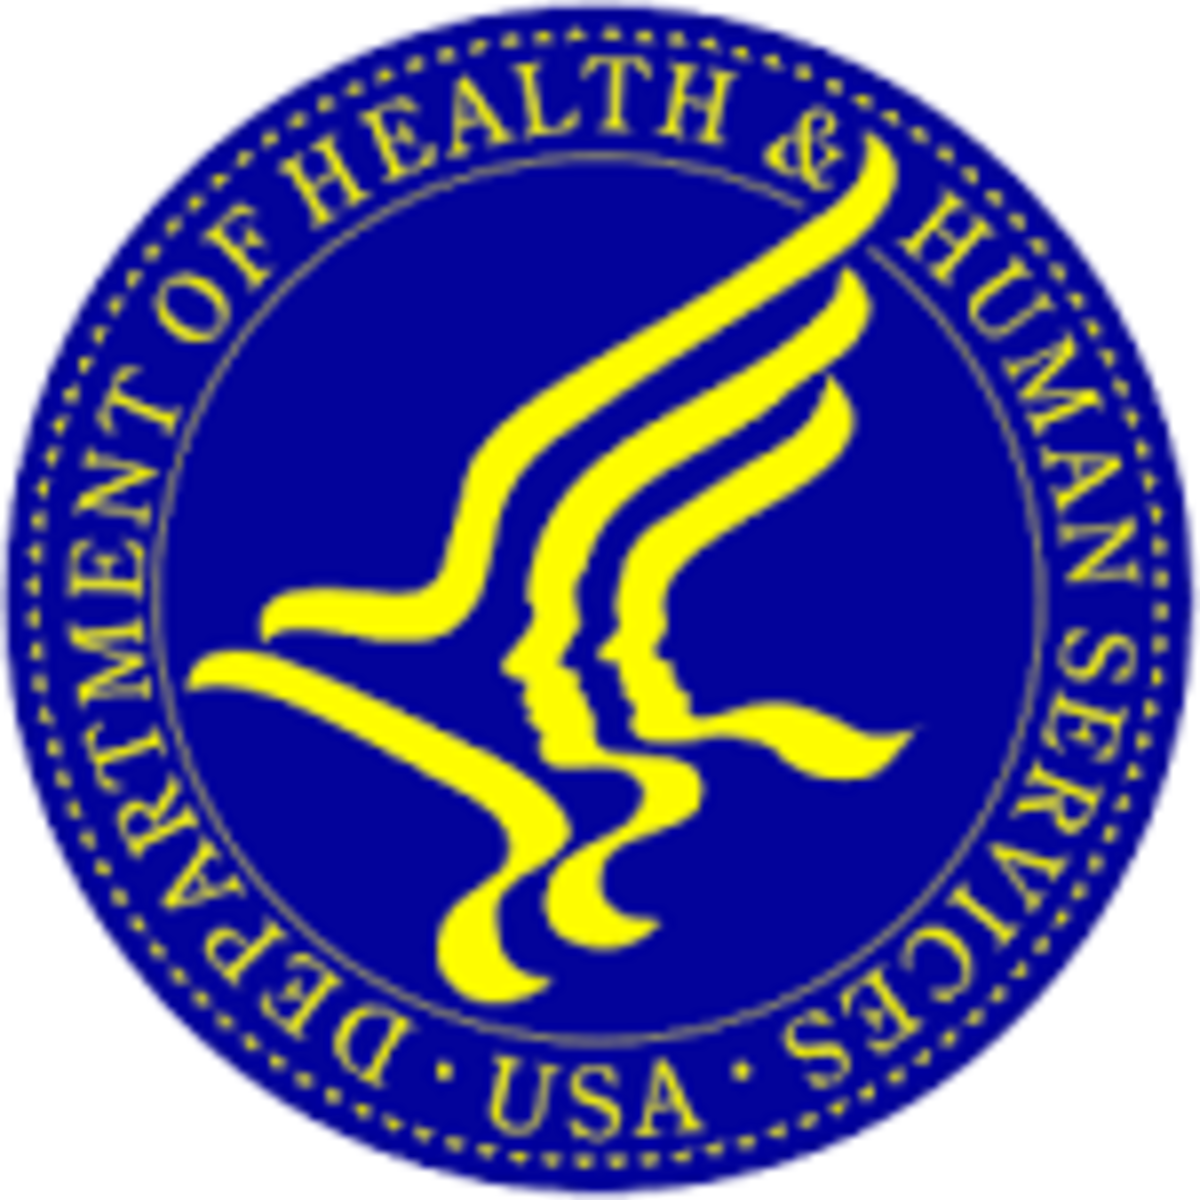 Department of Health and Human Services, HHS - logo